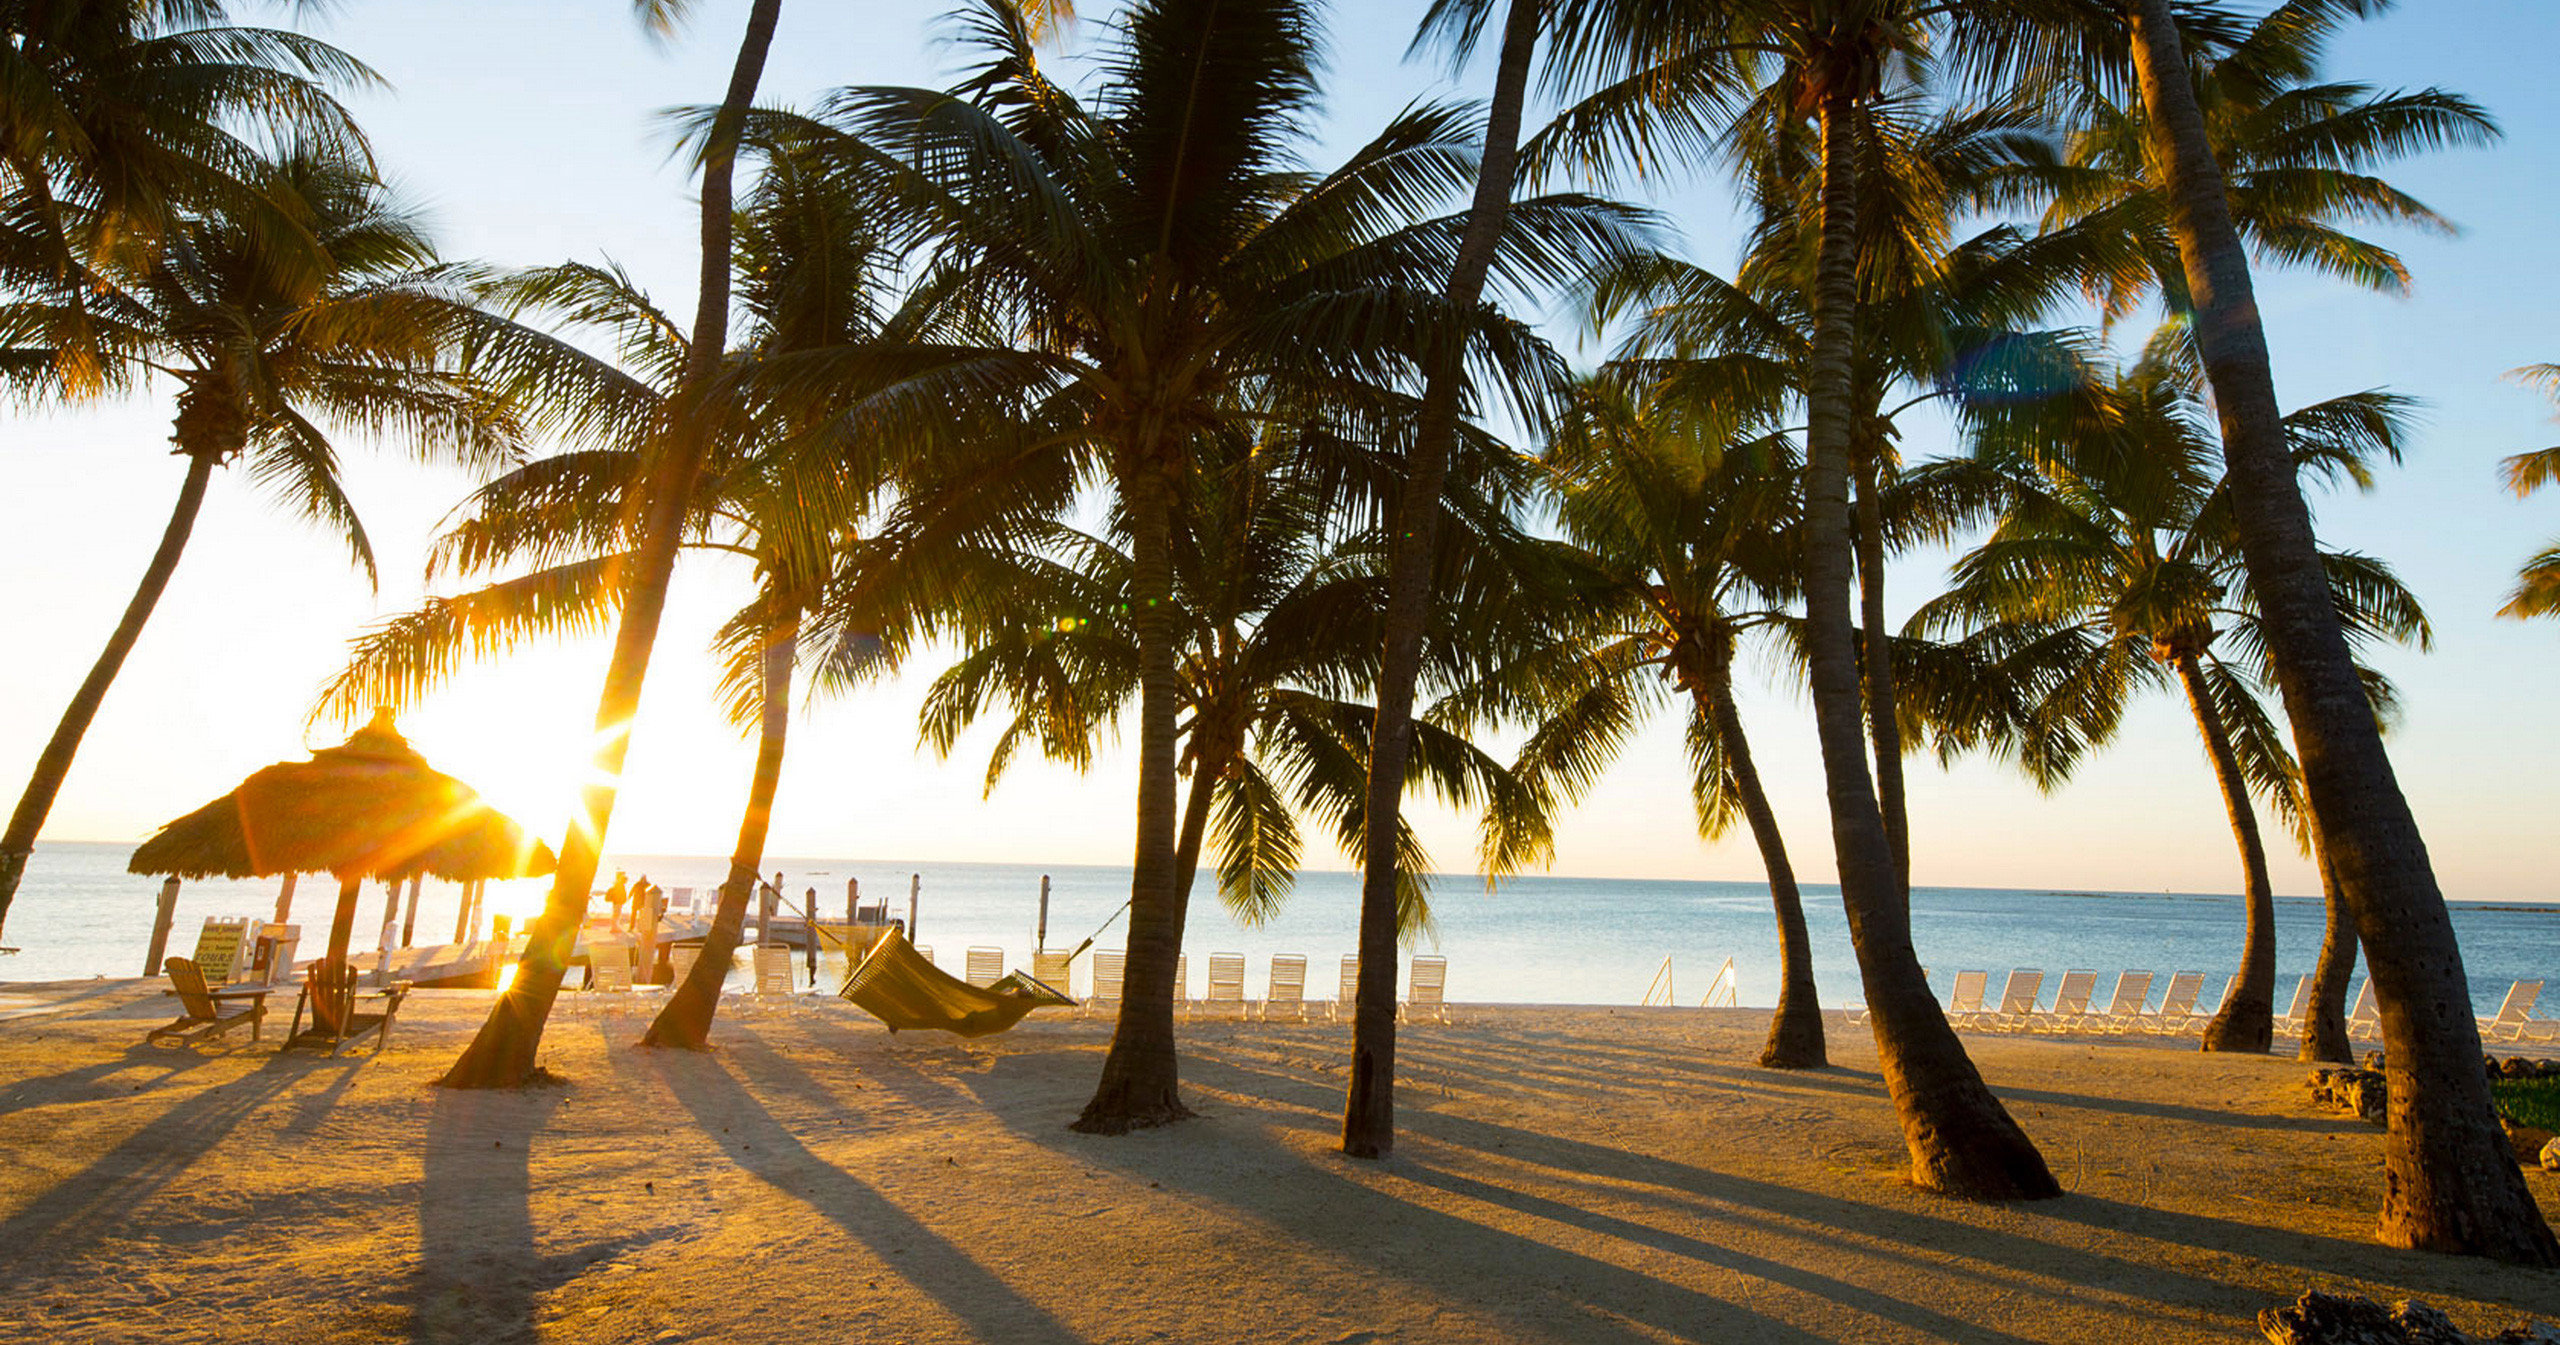 Beach Beachfront Hotels Resort Romance Scenic views water tree outdoor sky palm plant Ocean body of water palm family vacation Sea arecales morning sunlight woody plant Sunset Coast tropics sandy lined Lake shade shore